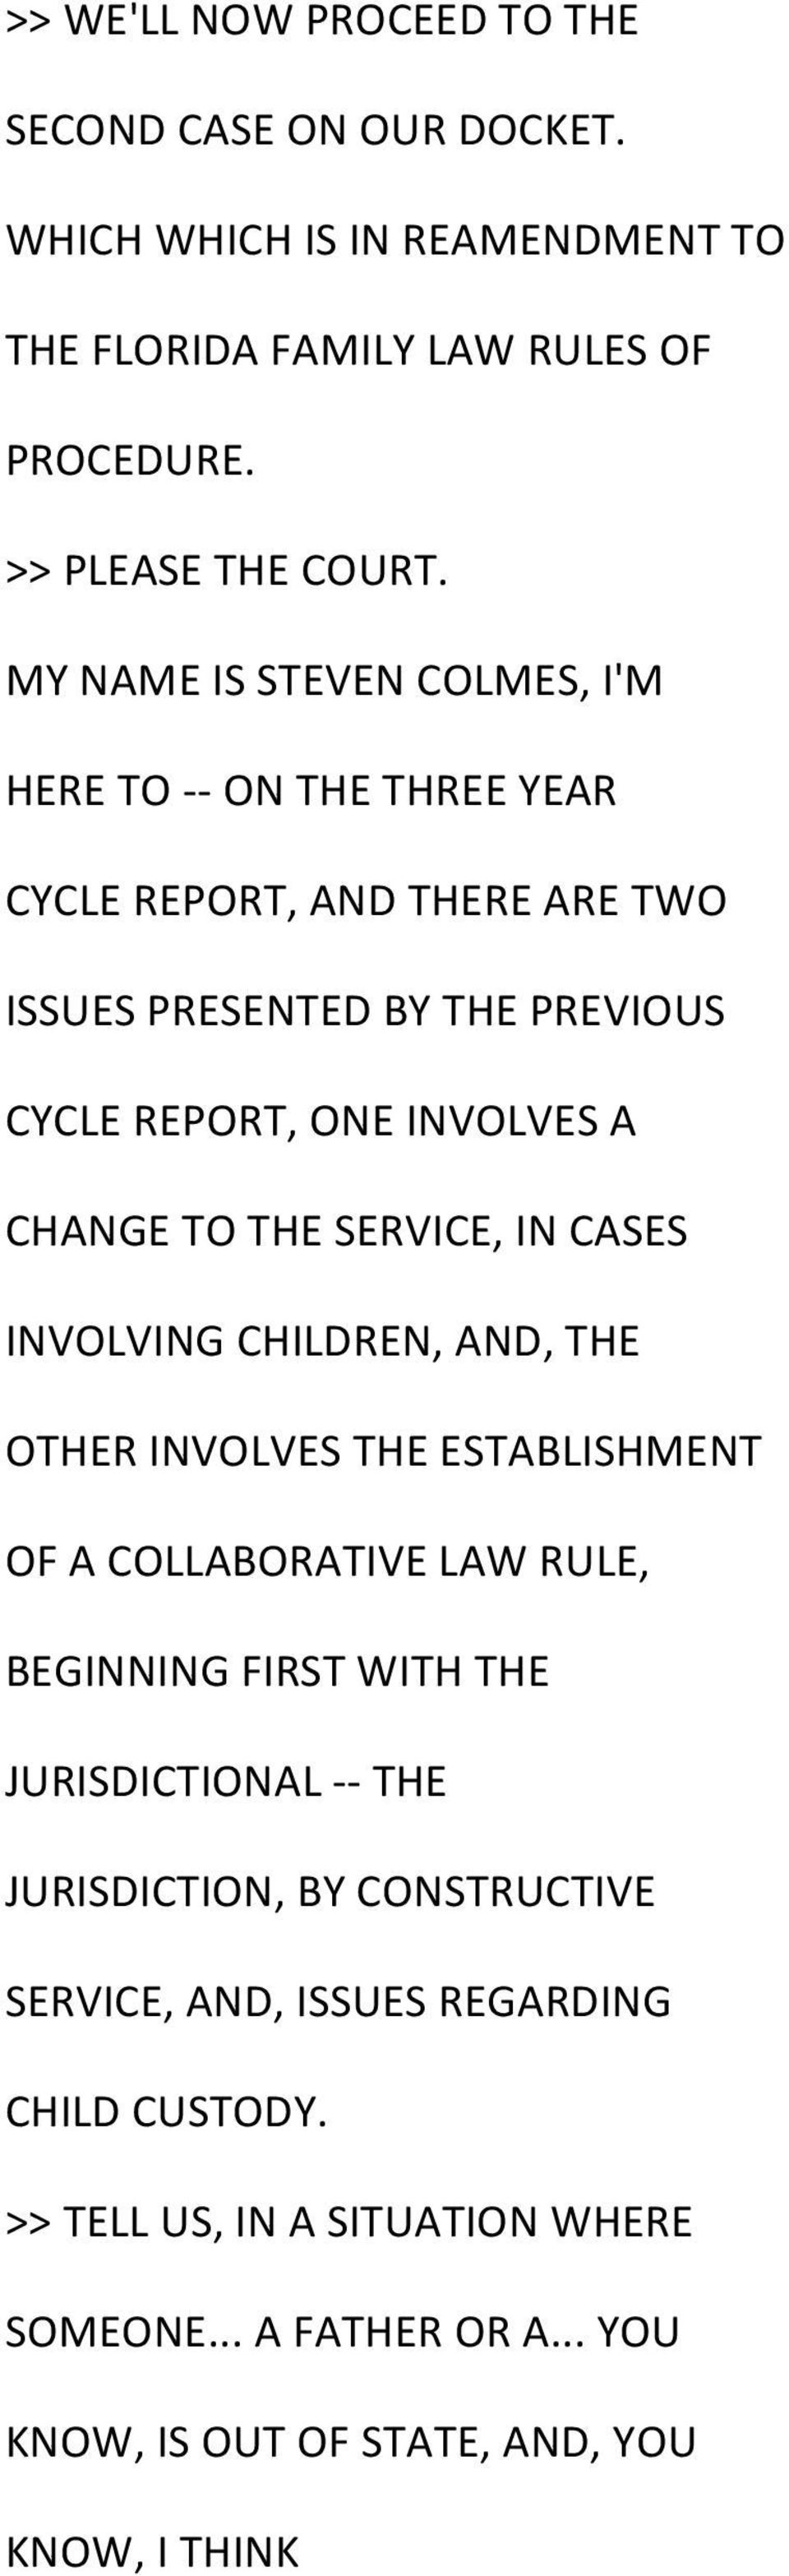 THE SERVICE, IN CASES INVOLVING CHILDREN, AND, THE OTHER INVOLVES THE ESTABLISHMENT OF A COLLABORATIVE LAW RULE, BEGINNING FIRST WITH THE JURISDICTIONAL - - THE